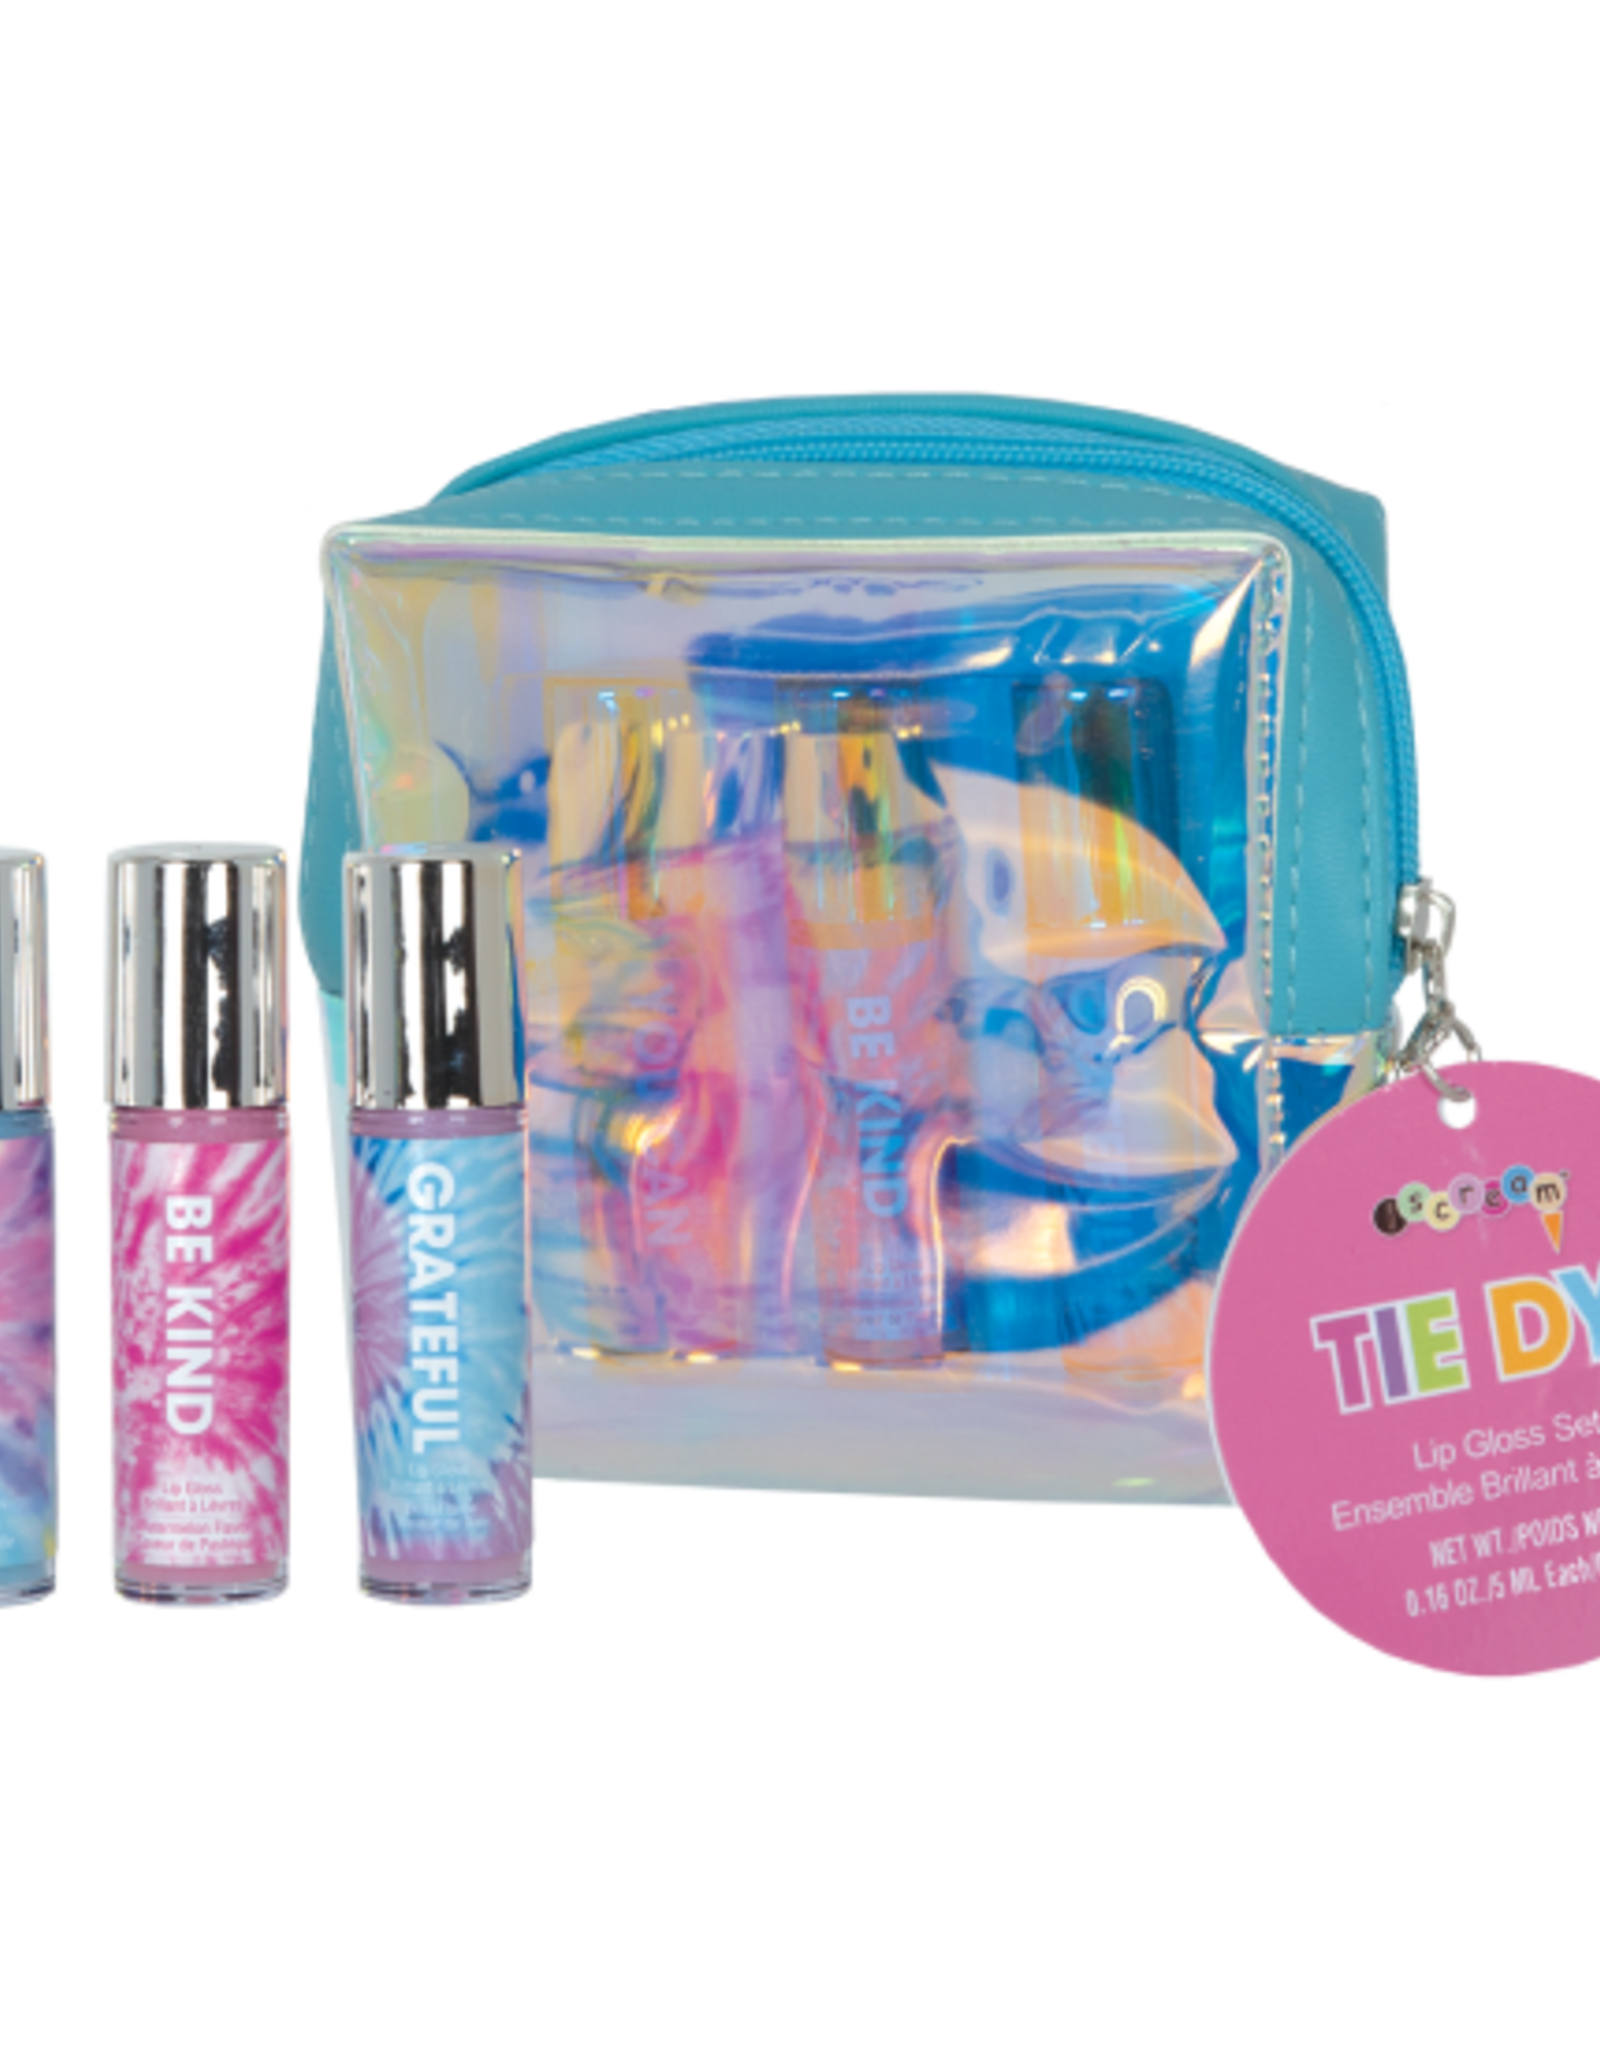 Iscream TIE DYE 3 MINI LIP GLOSSES